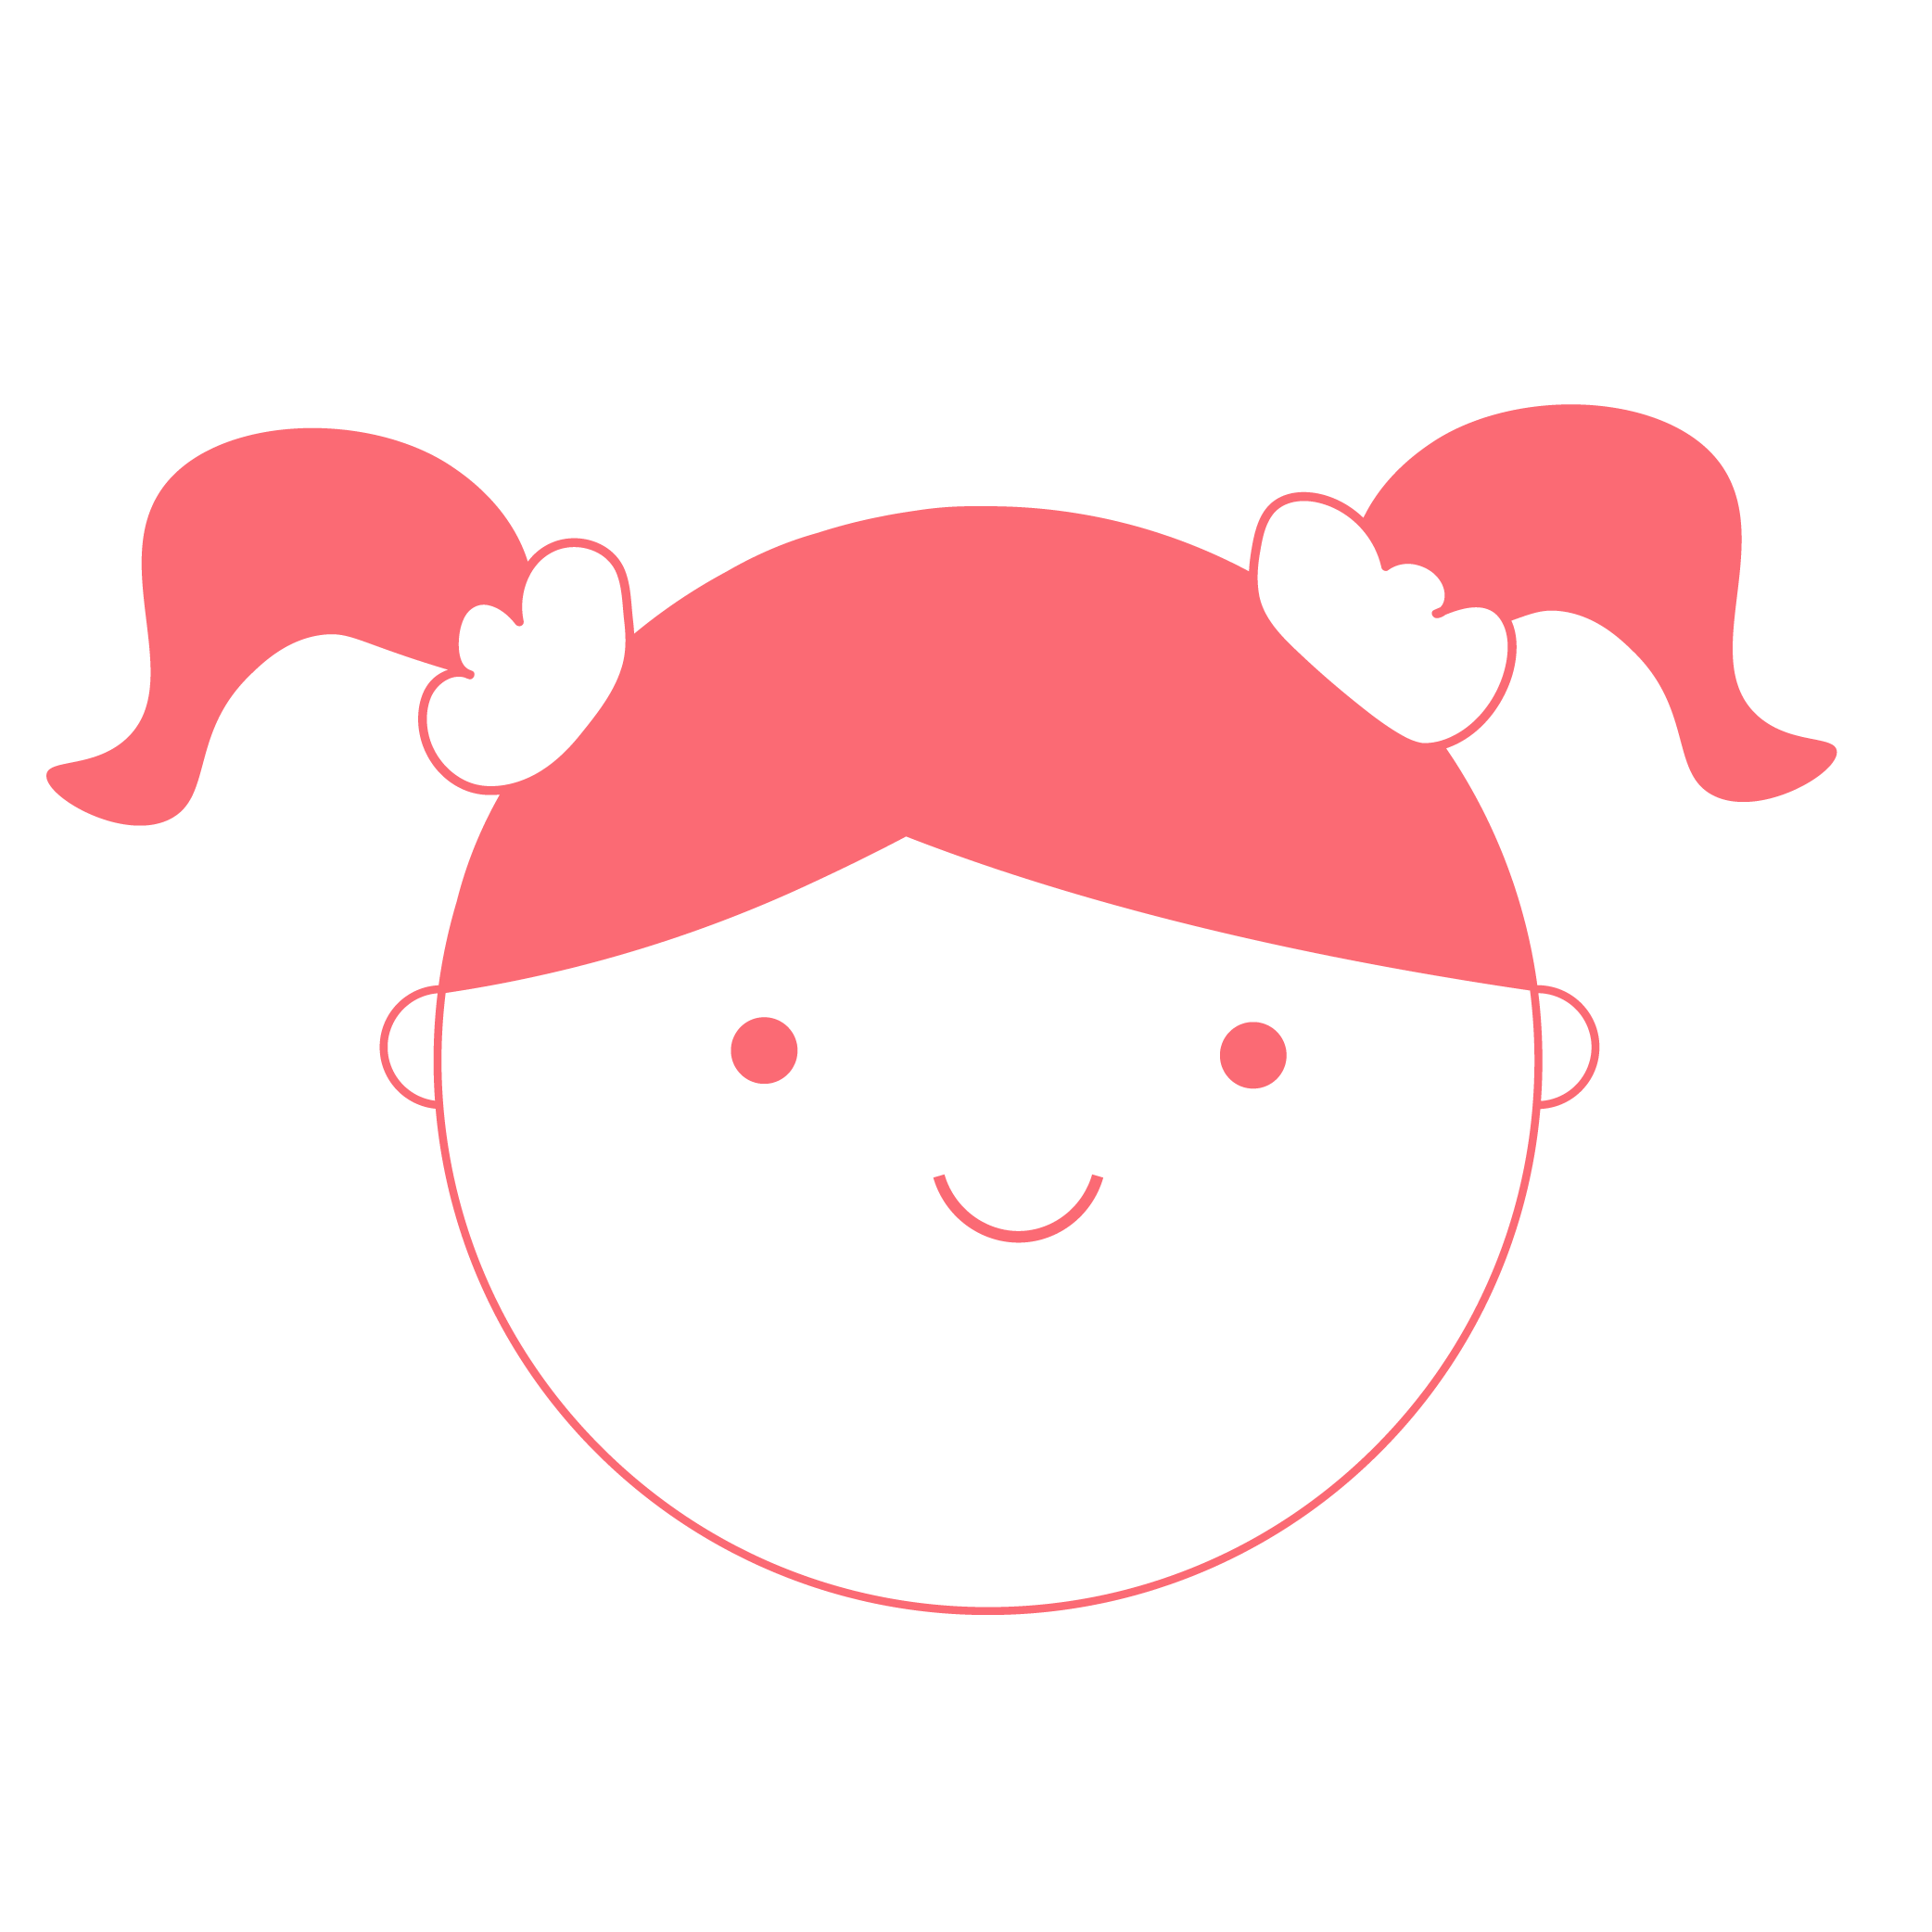 person icon2-11.png